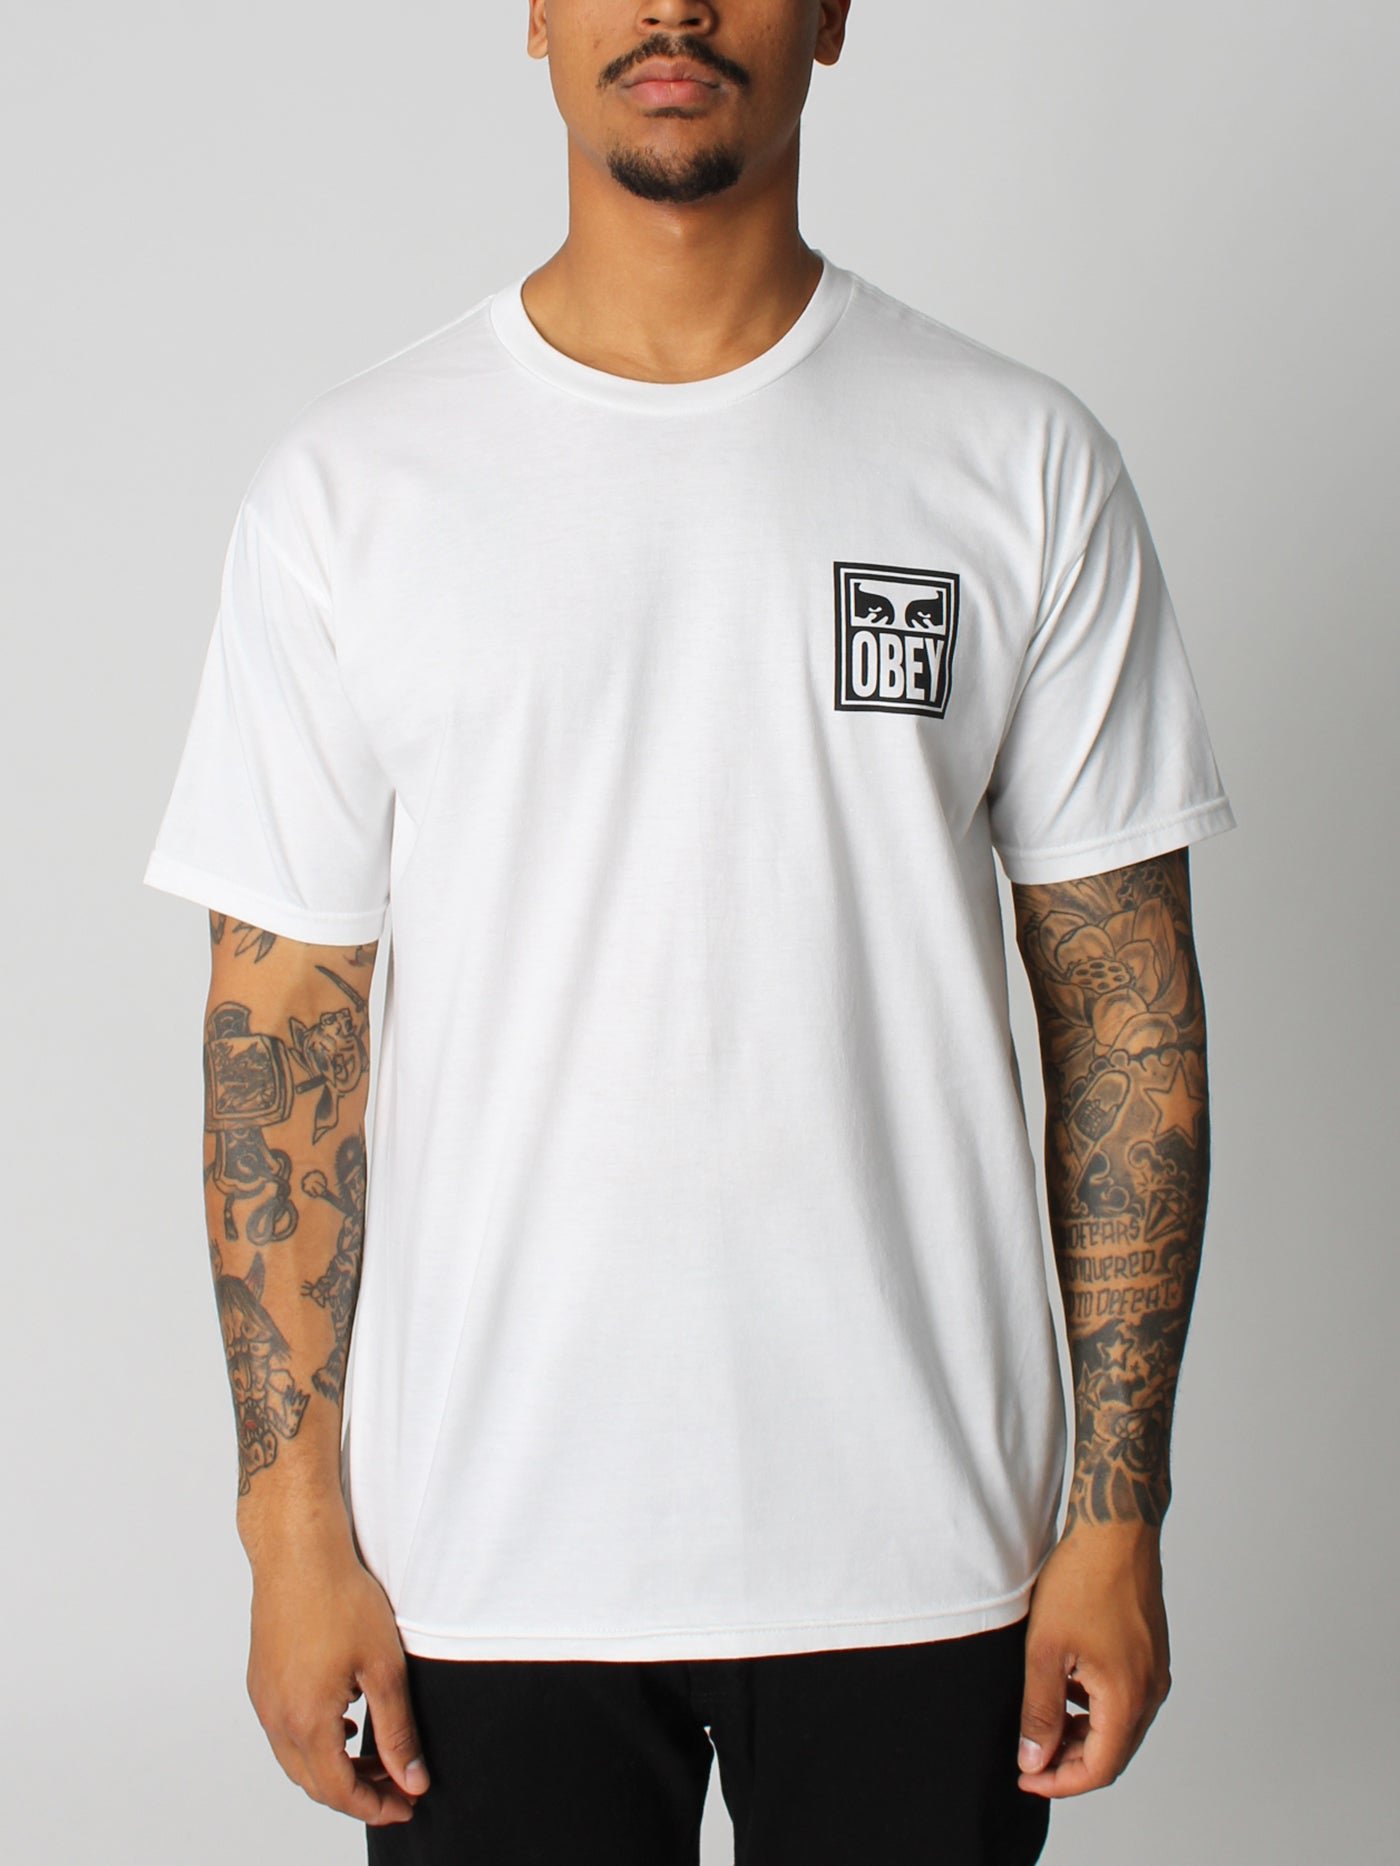 d19ae432 Obey | EMPIRE – Empire Online Store